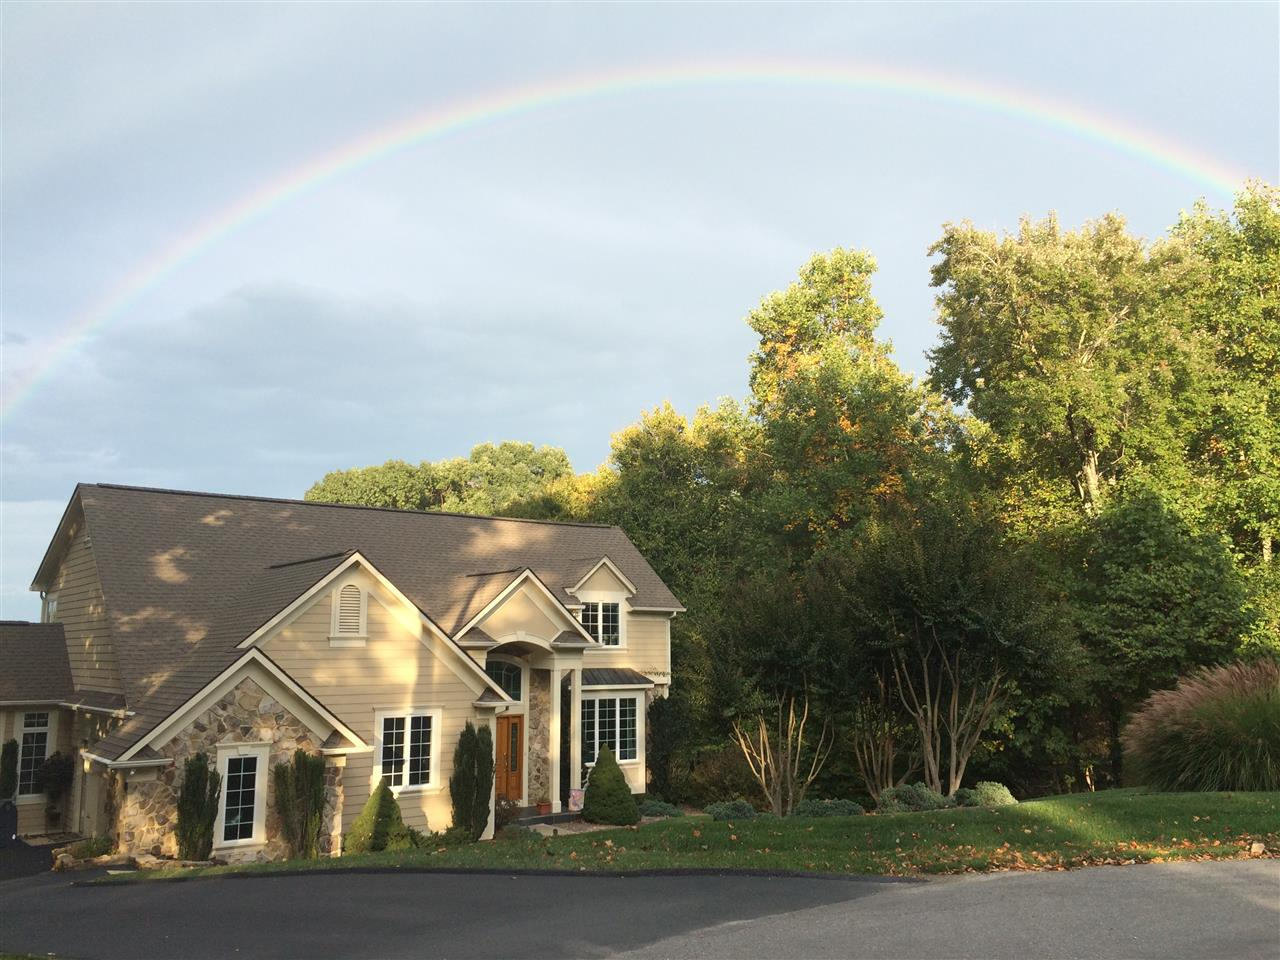 Rainbow over a home at Smith Mountain Lake, VA